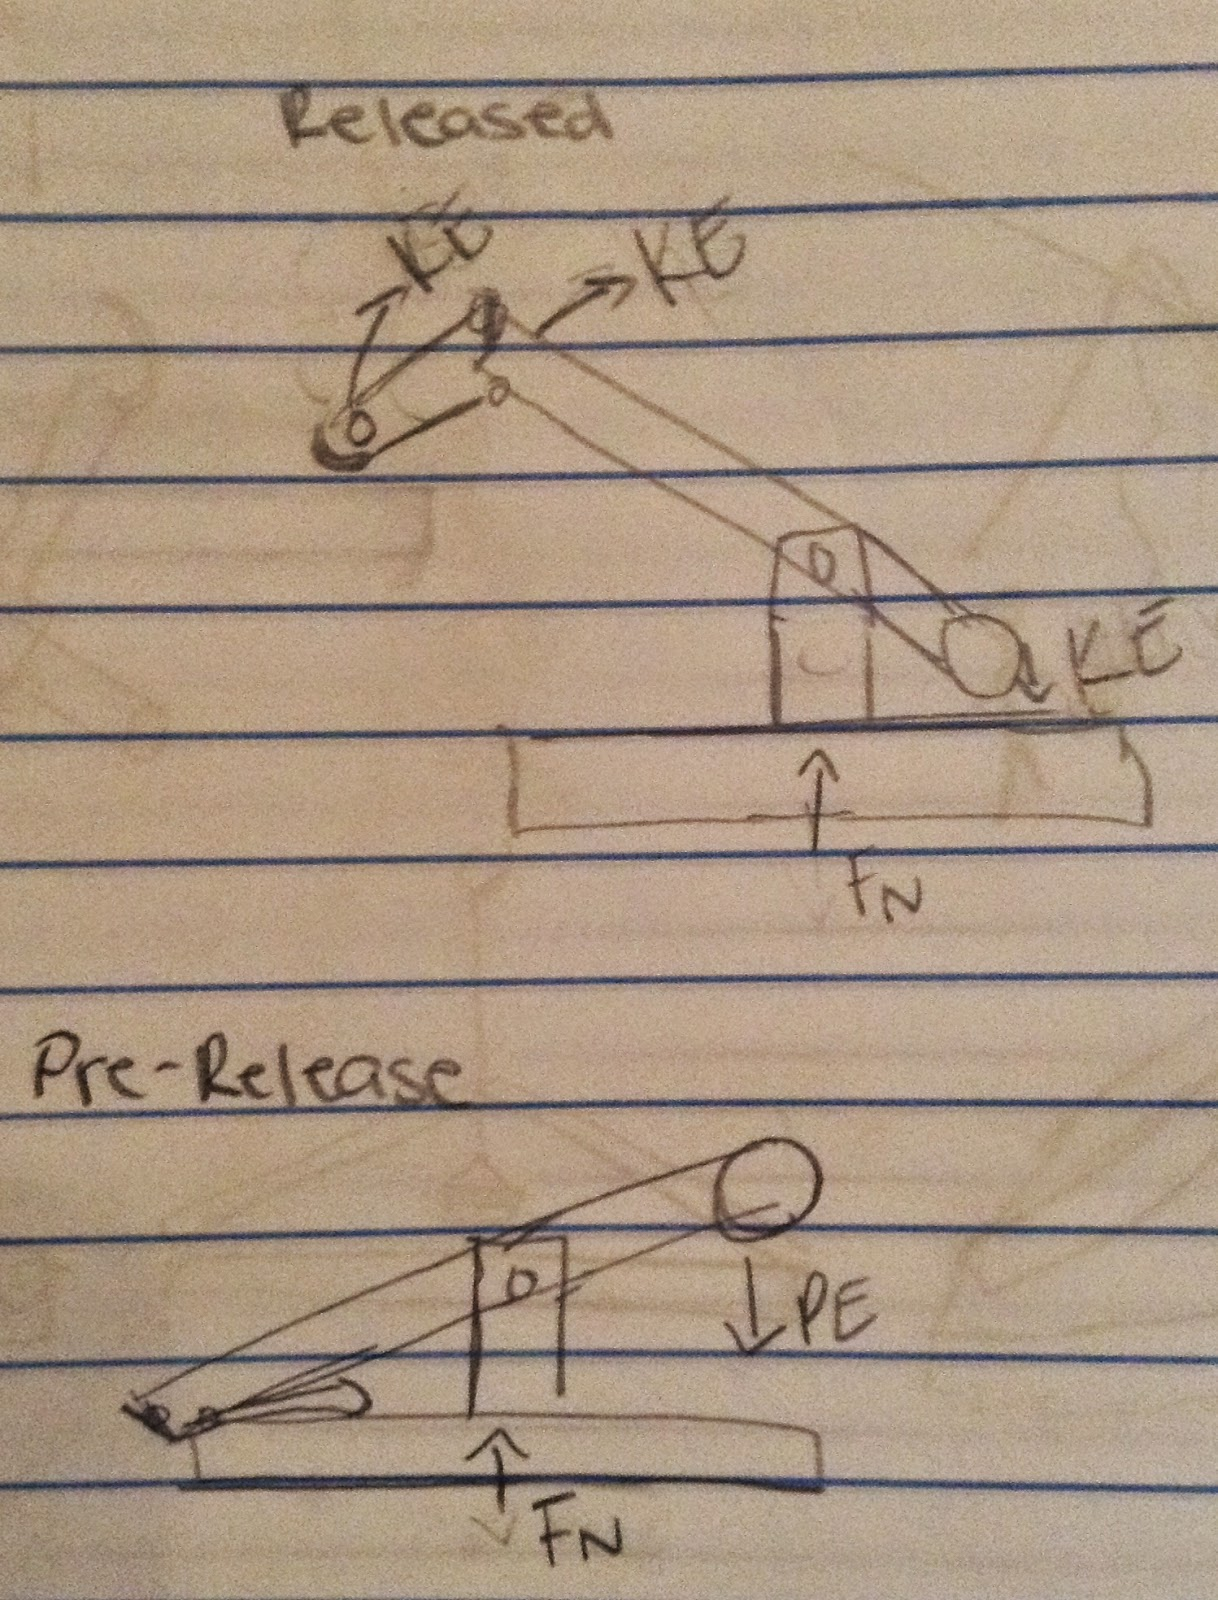 before launch the trebuchet arm has potential energy pe after the trebuchet arm is released it has kinetic energy ke and the arm and trebuchet  [ 1218 x 1600 Pixel ]